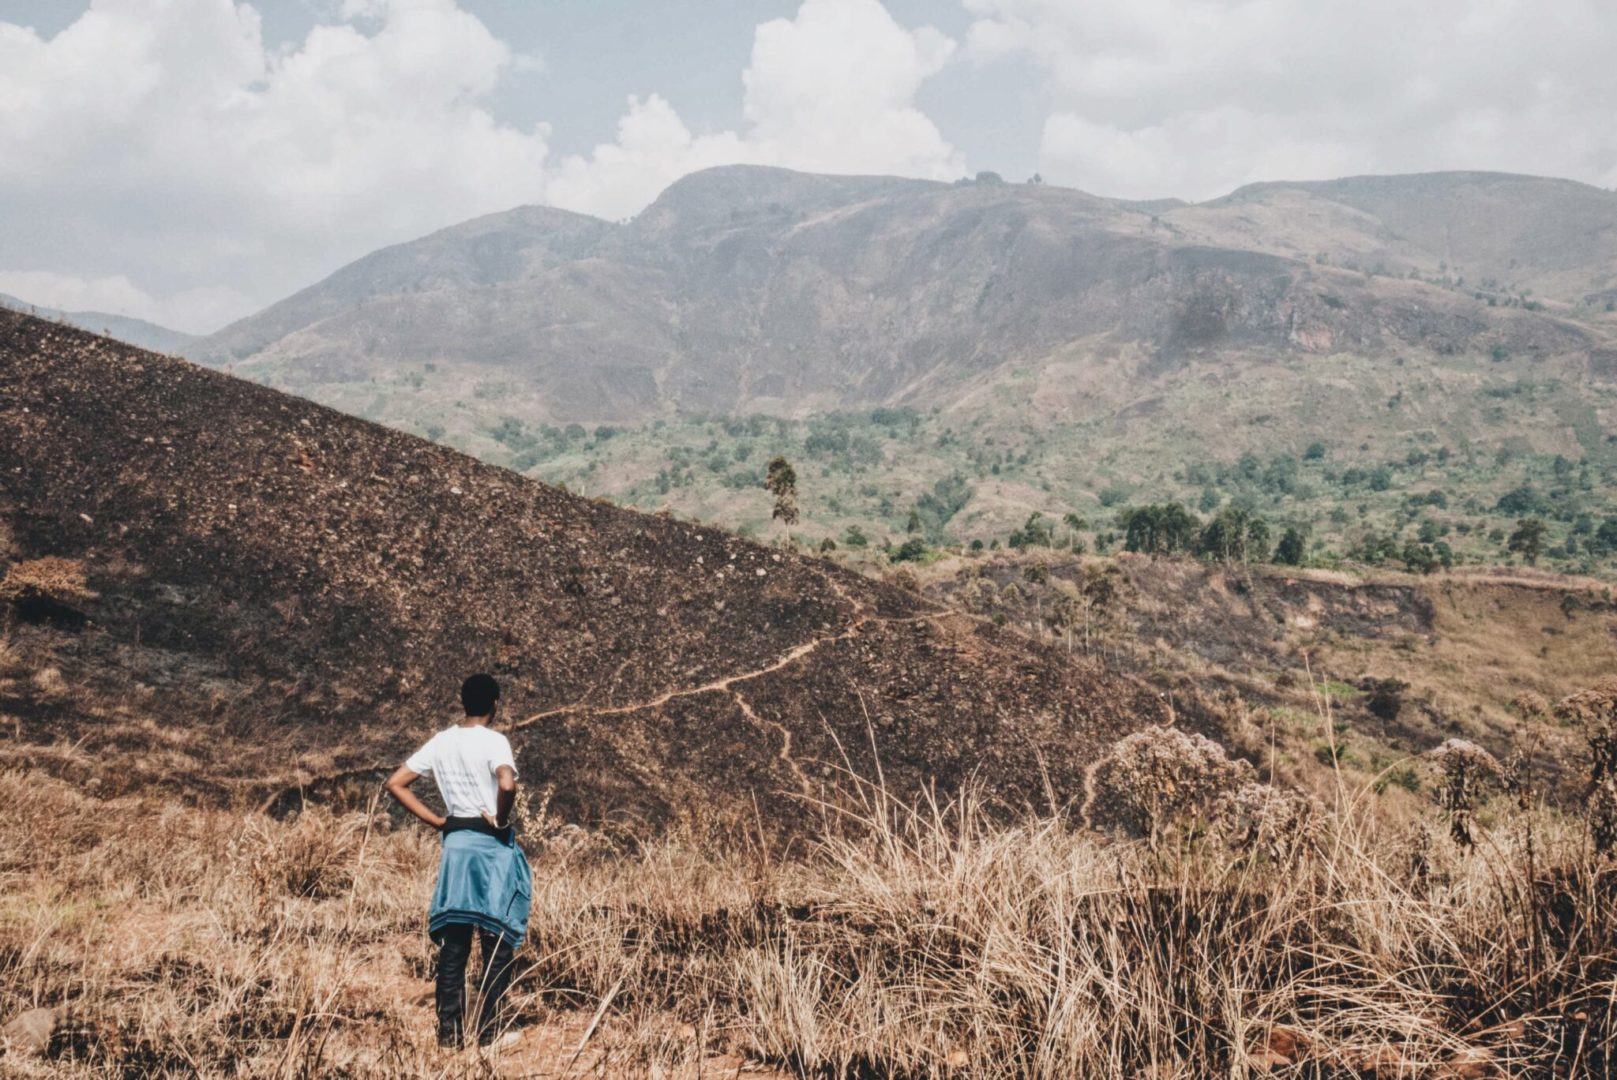 The brutal connection between poverty and deforestation